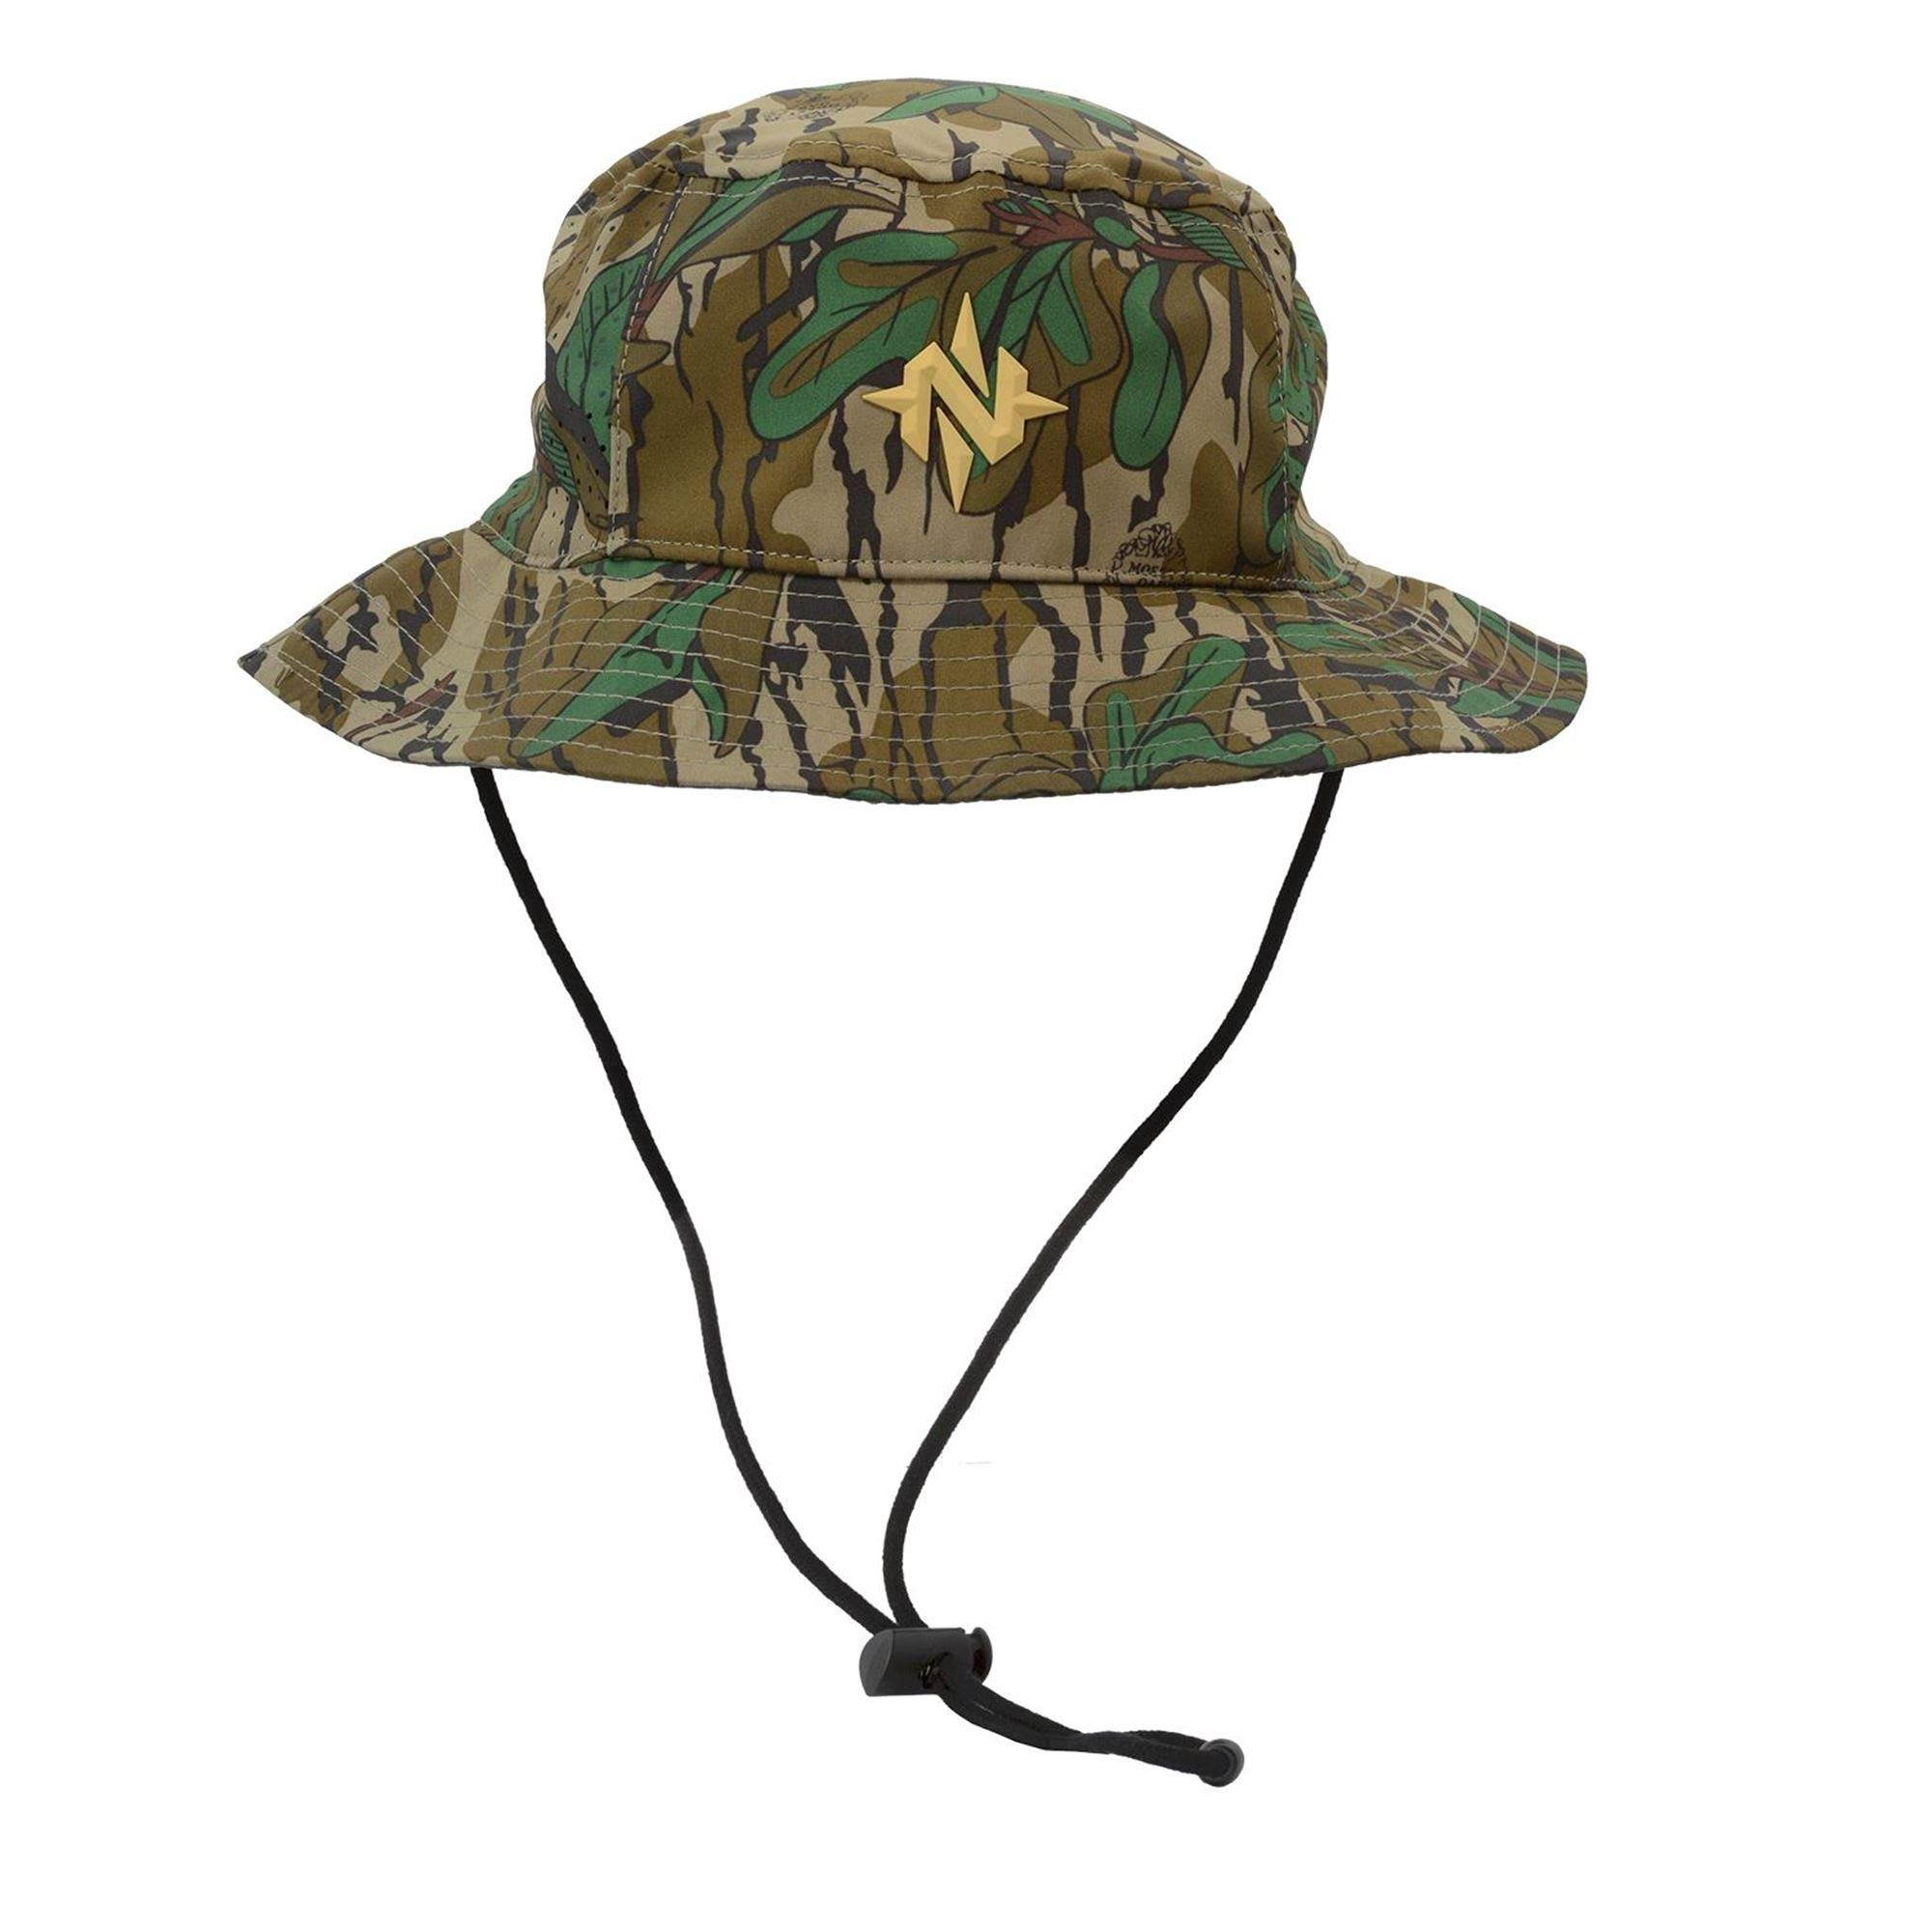 Nomad Outdoor Bucket Hat, Mossy Oak Greenleaf, One Size by Nomad